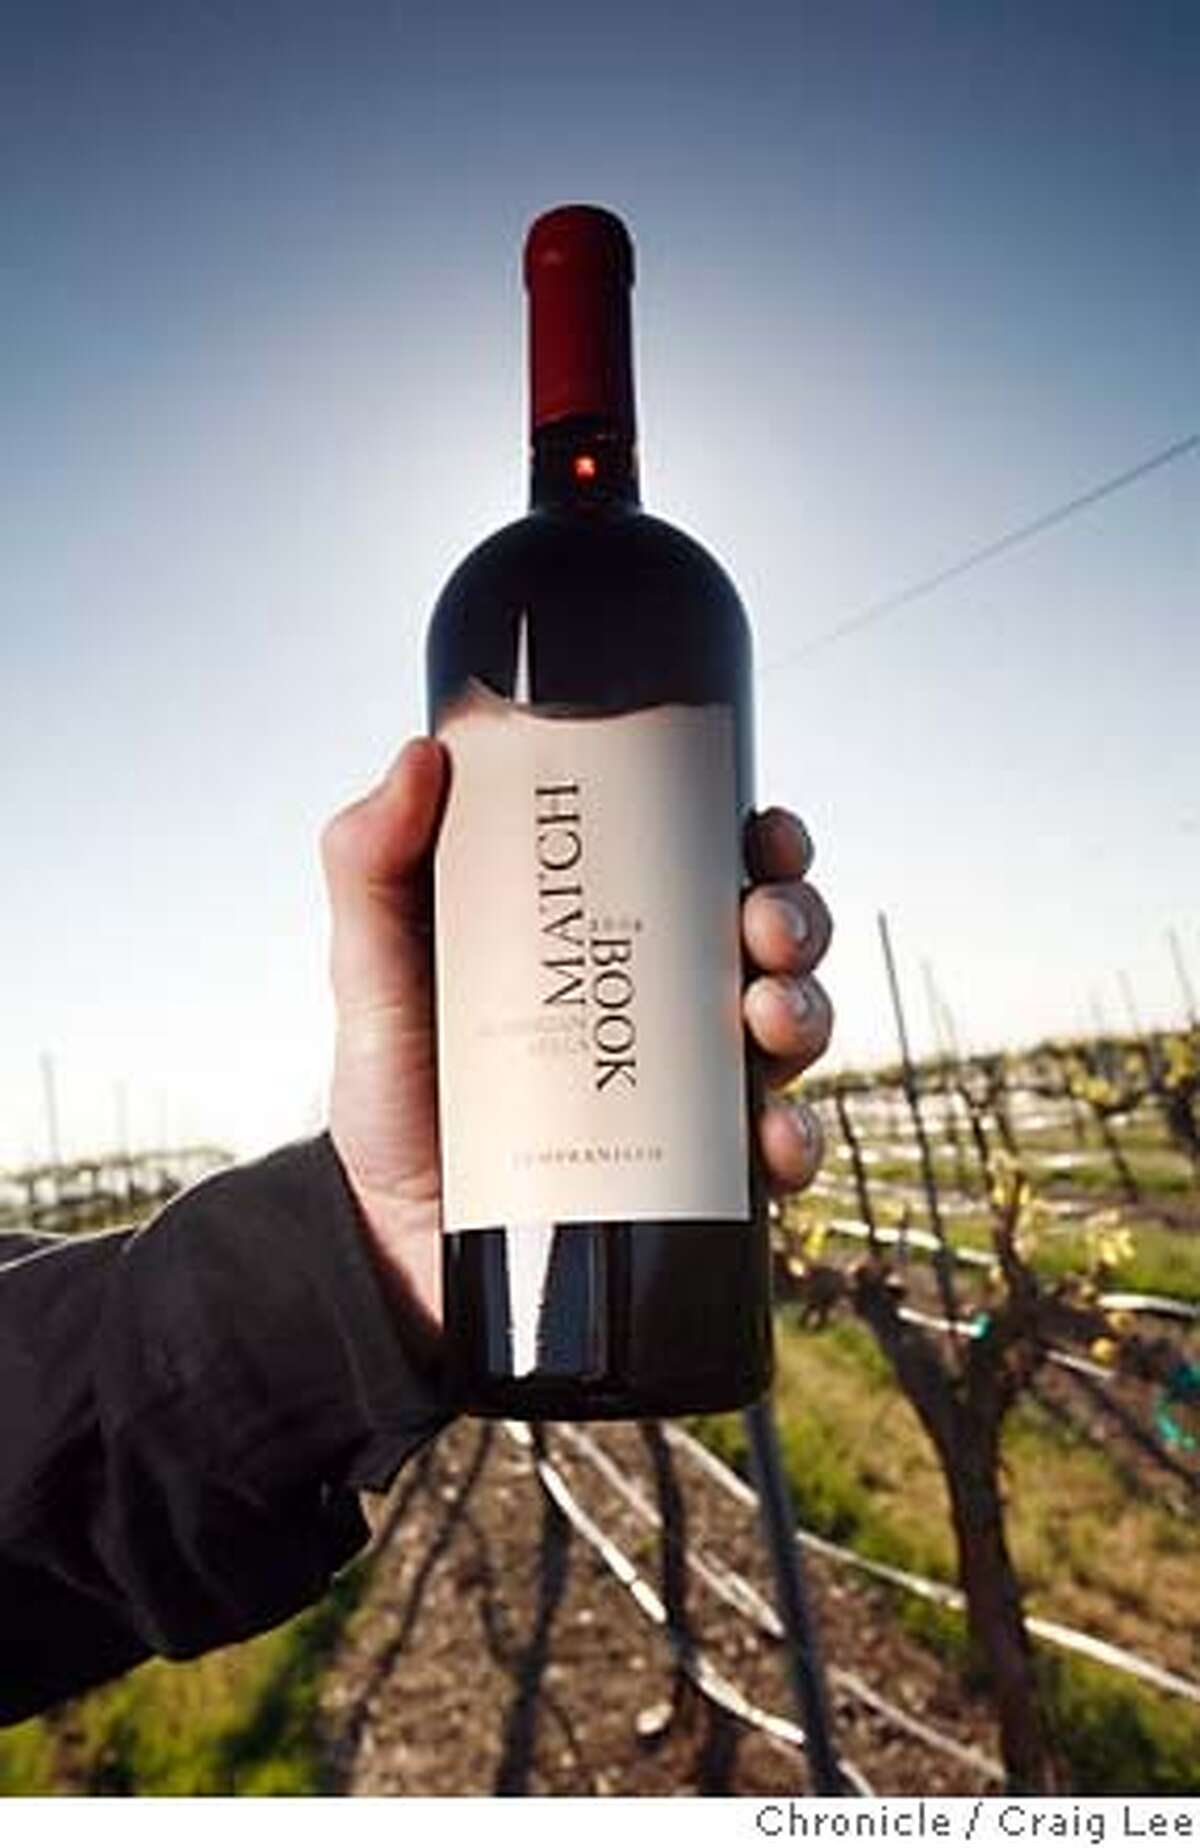 YOLO13_328_cl.JPG Photo for a story on wineries in Yolo county. This is Crew Wine Company. Photo of their bottle of 2004 Match Book Tempranillo Dunningan Hills. Event on 3/28/07 in Zamora. photo by Craig Lee / The Chronicle Ran on: 04-08-2007 Ran on: 04-11-2007 Ran on: 04-13-2007 John and Lane Giguiere, above, stand in the Dunnigan Hills vineyard that produces the grapes for their Match Book wines, far left. At left, Warren Bogle (left), his mother, Patty, and sister Jody stand in front of Bogle Vineyards near Clarksburg. Ran on: 04-13-2007 John and Lane Giguiere, above, stand in the Dunnigan Hills vineyard that produces the grapes for their Match Book wines, far left. At left, Warren Bogle (left), his mother, Patty, and sister Jody stand in front of Bogle Vineyards near Clarksburg.